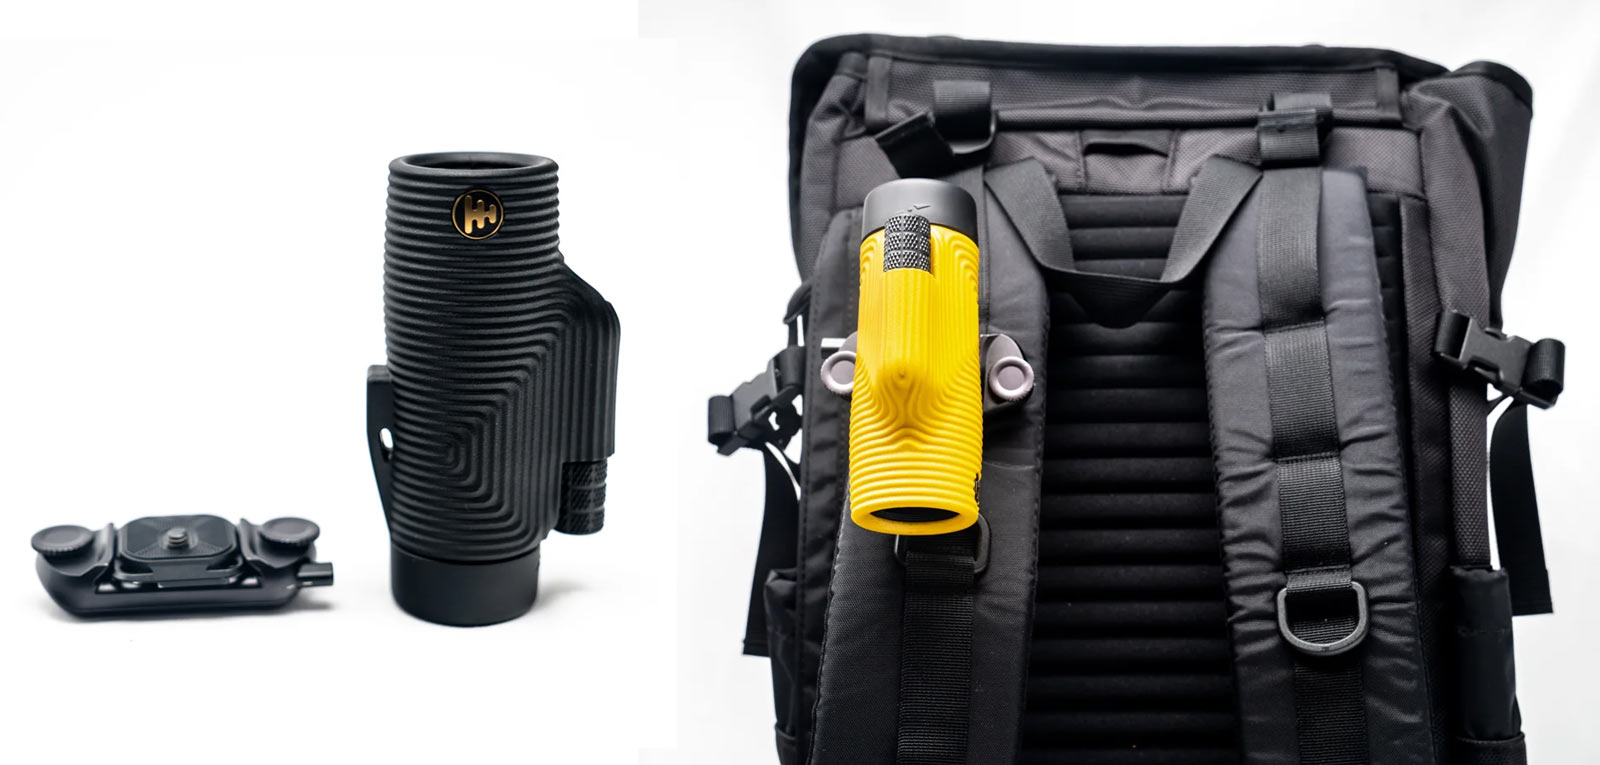 peak design backpack strap mount for nocs monocular and binoculars works the same as their camera mounting system